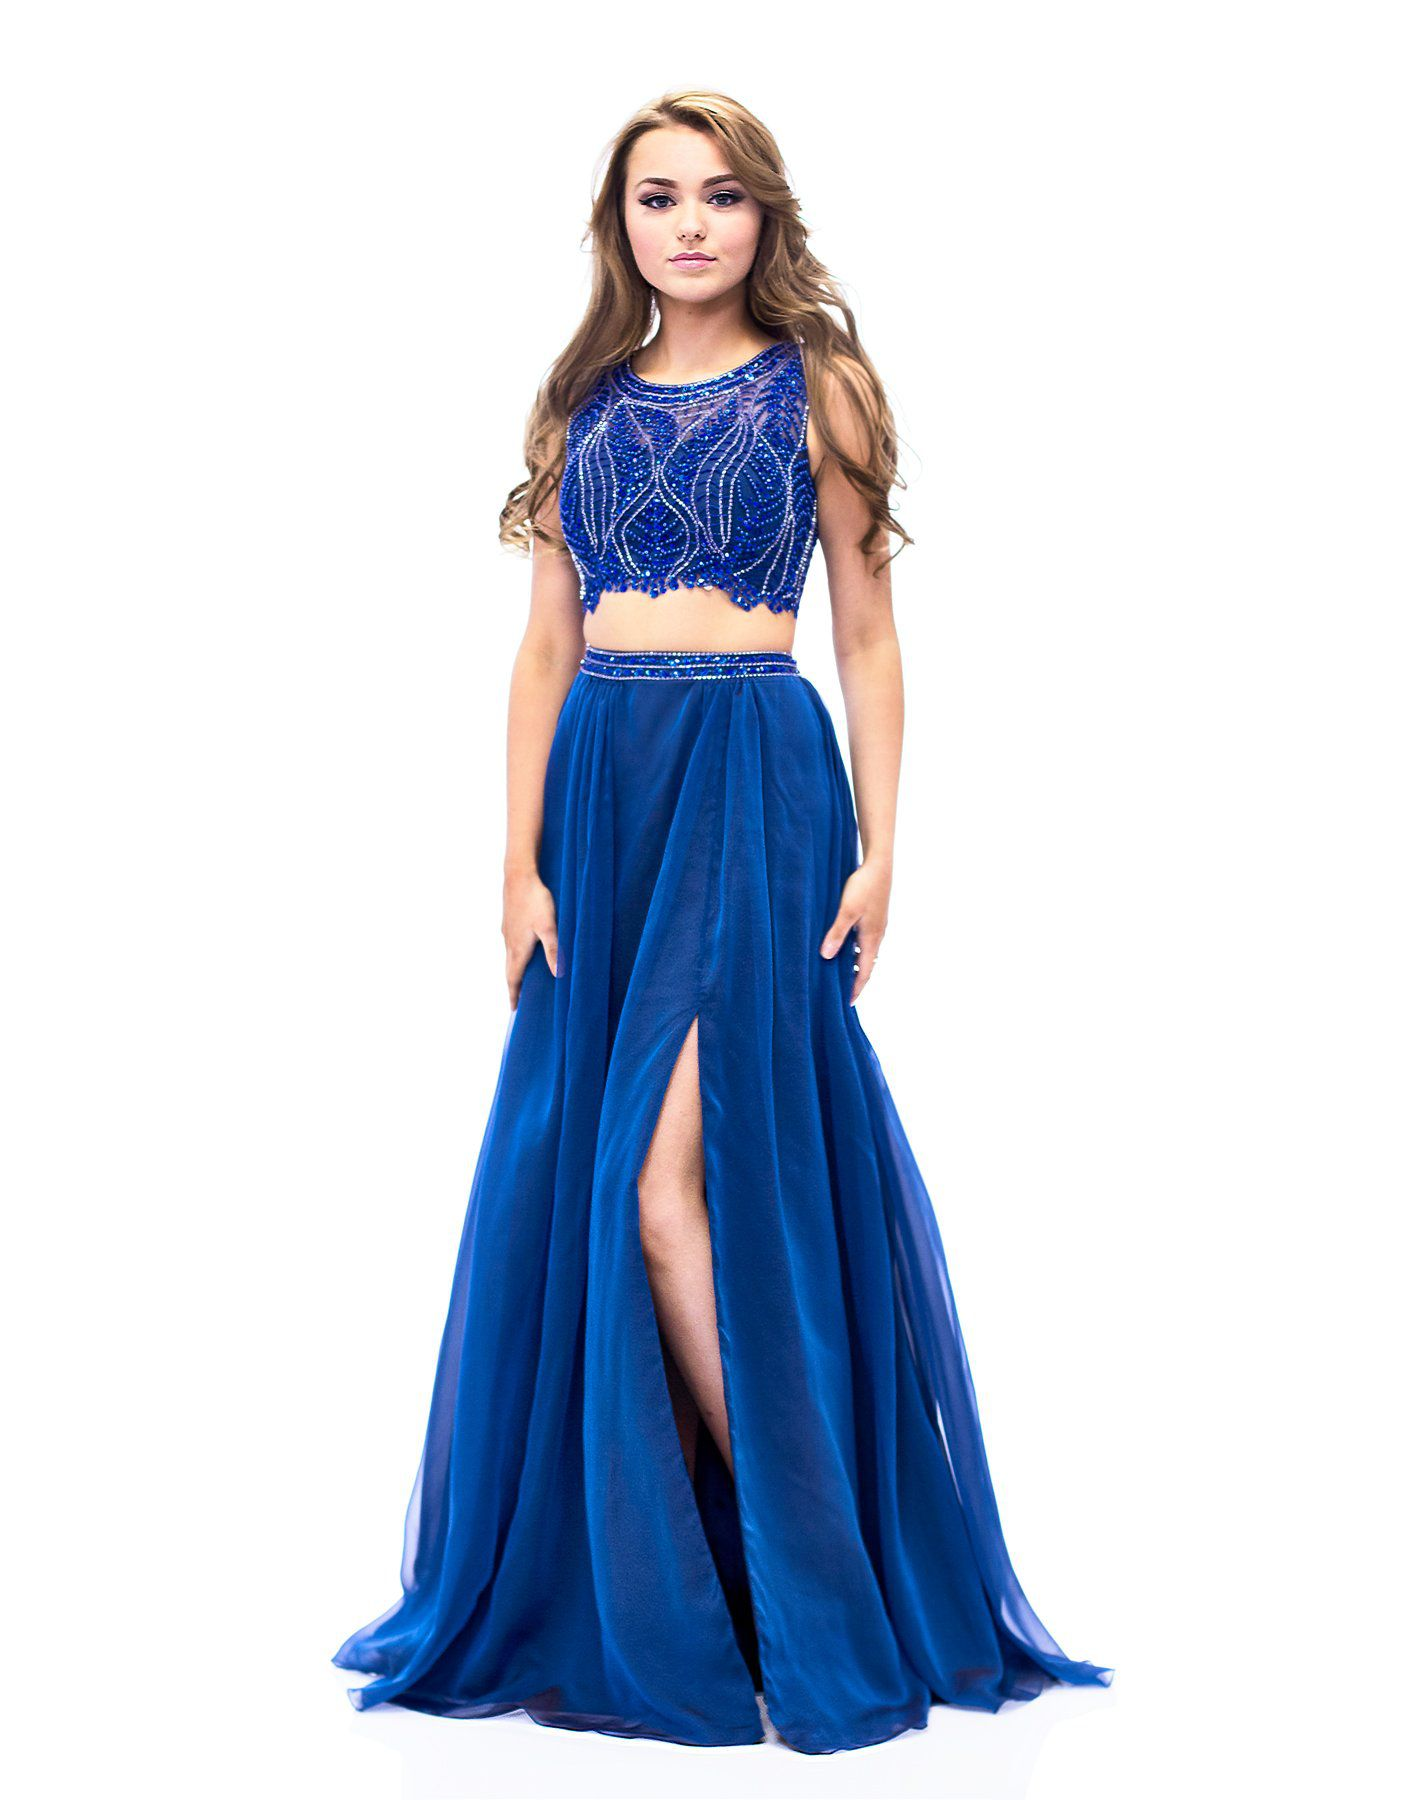 Style E1958 Milano Formals Blue Size 14 Tulle Tall Height Side slit Dress on Queenly